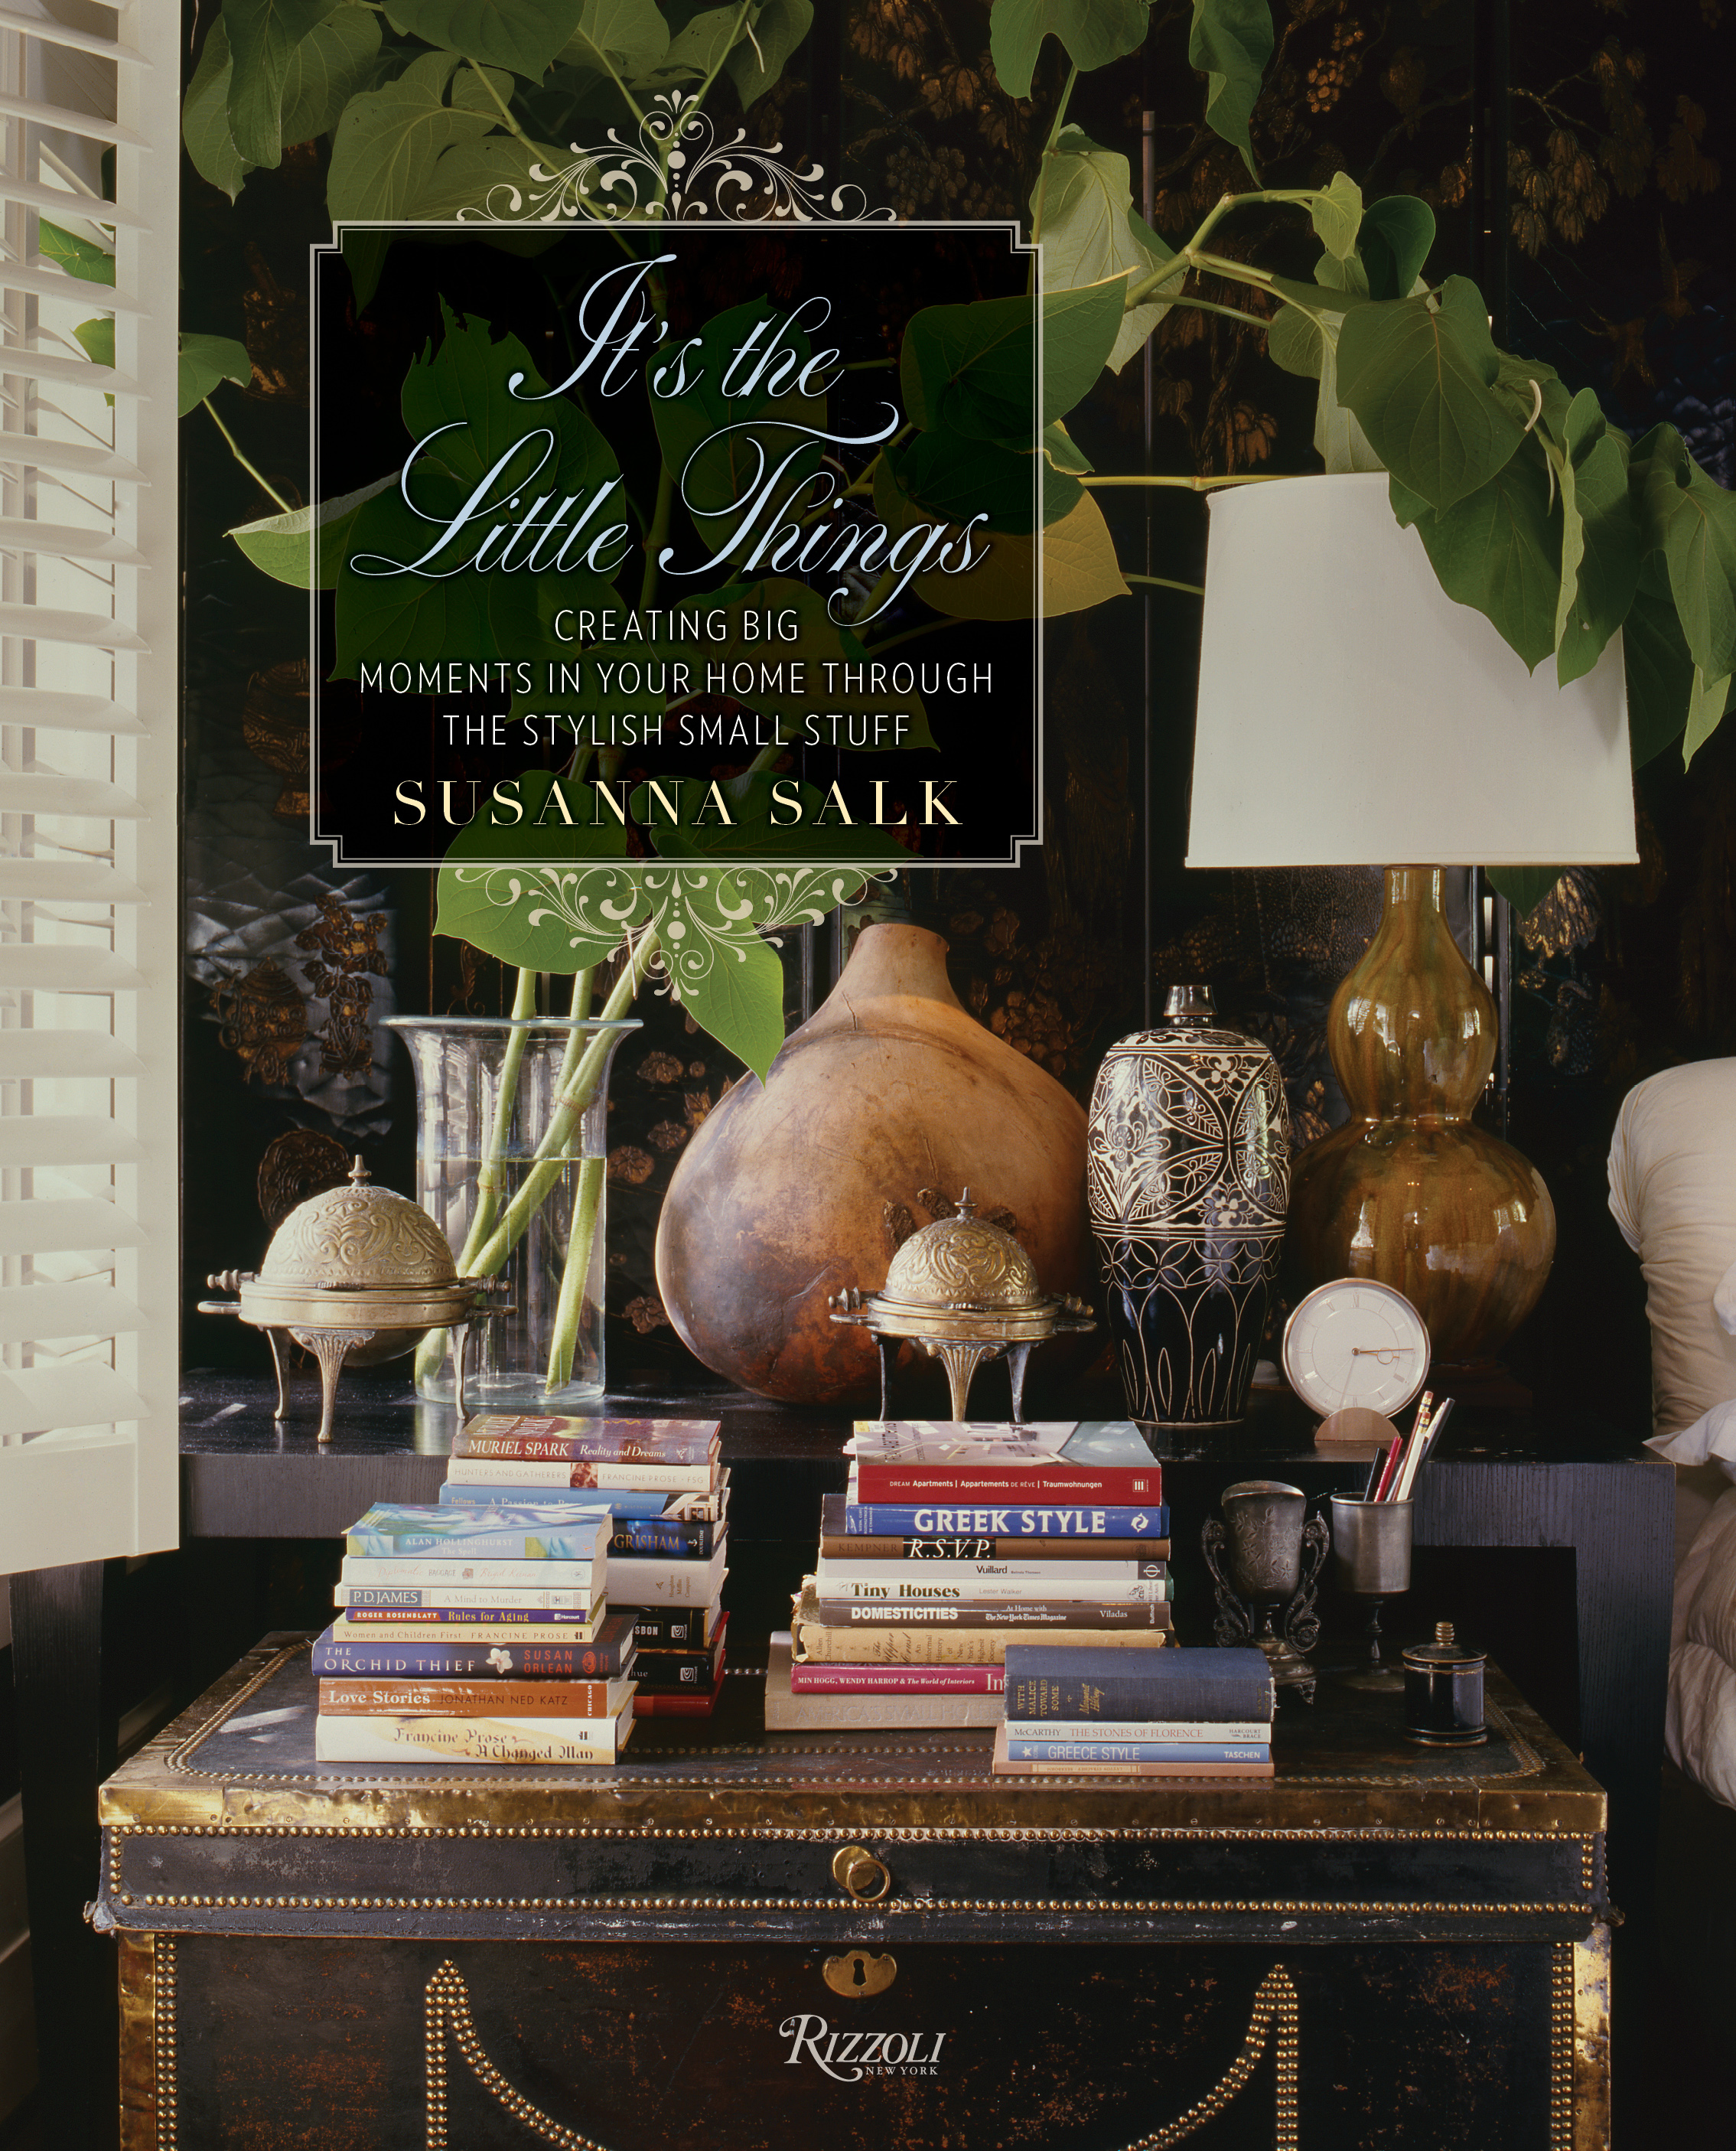 The Stylish Small Stuff Is Her Latest Book Published By Rizzoli New York Highlights How Top Interior Designers Like India Hicks And Bunny